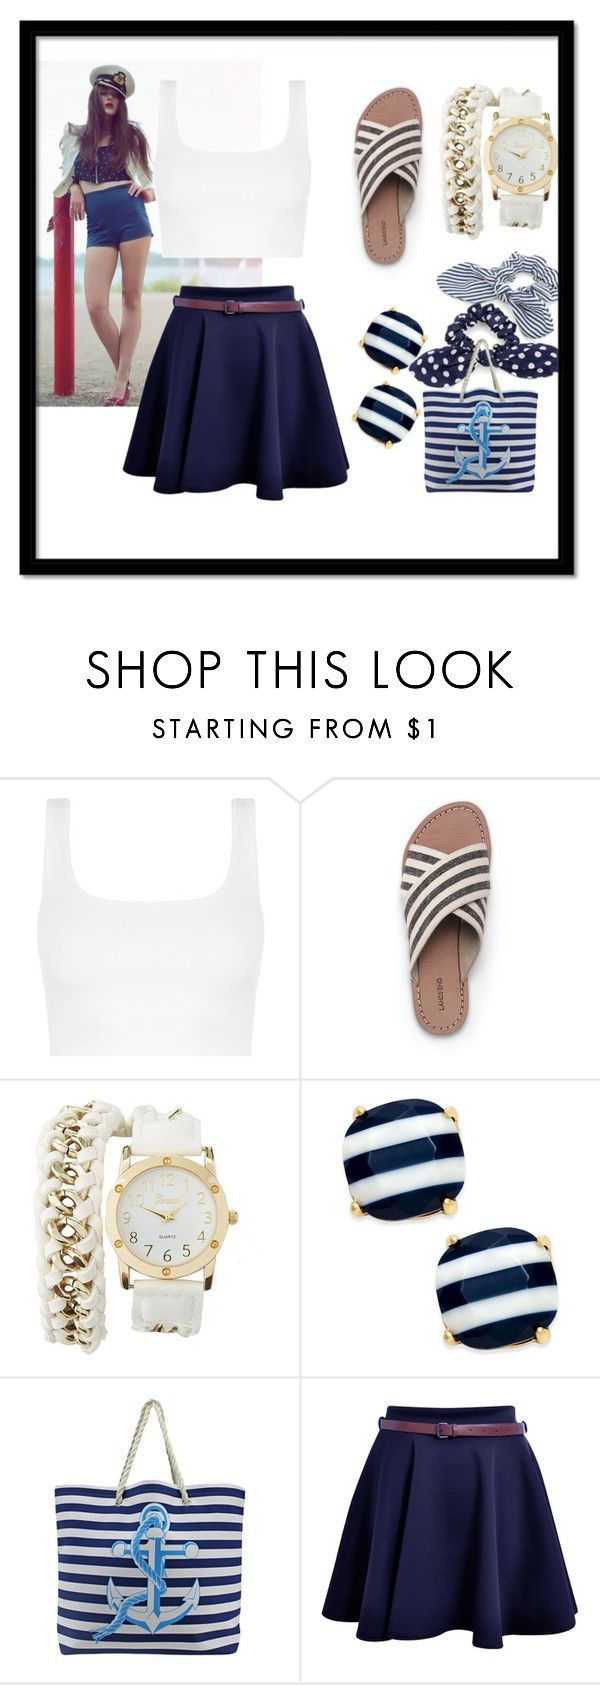 """""""Untitled #203"""" by frupapp on Polyvore featuring Lands' End, Charlotte Russe and Kate Spade"""